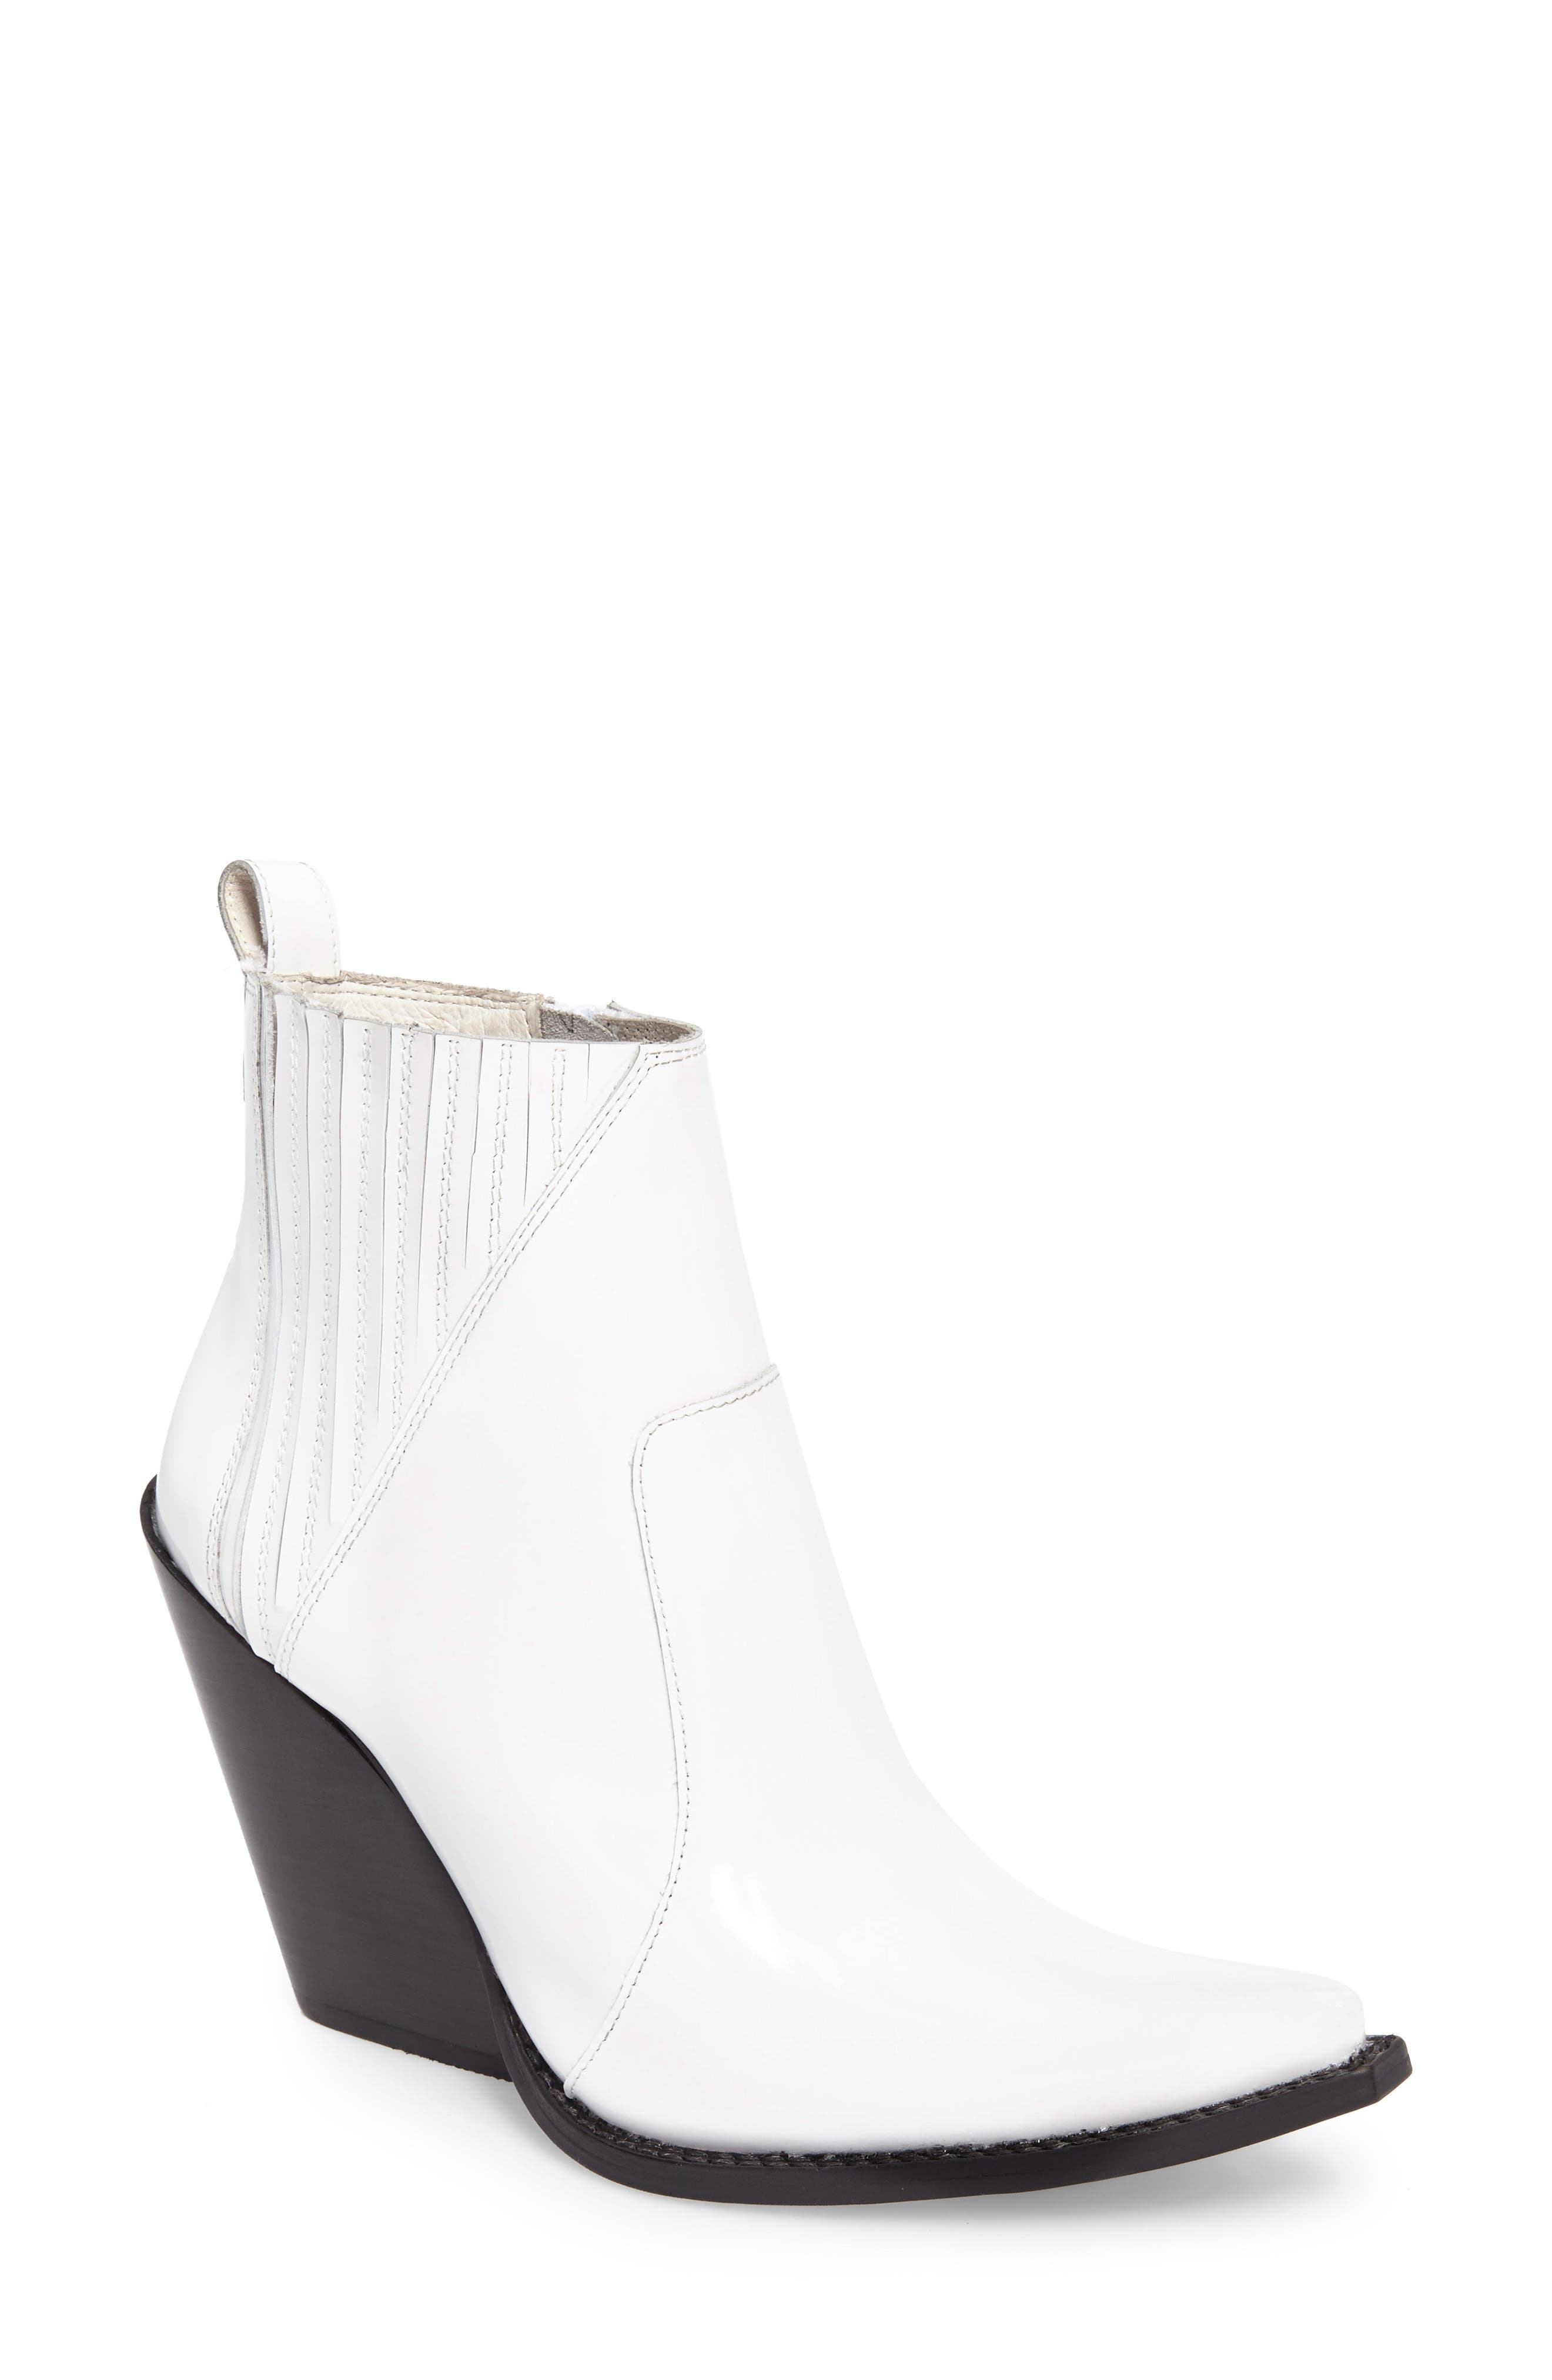 Homage Boot,                         Main,                         color, White Box